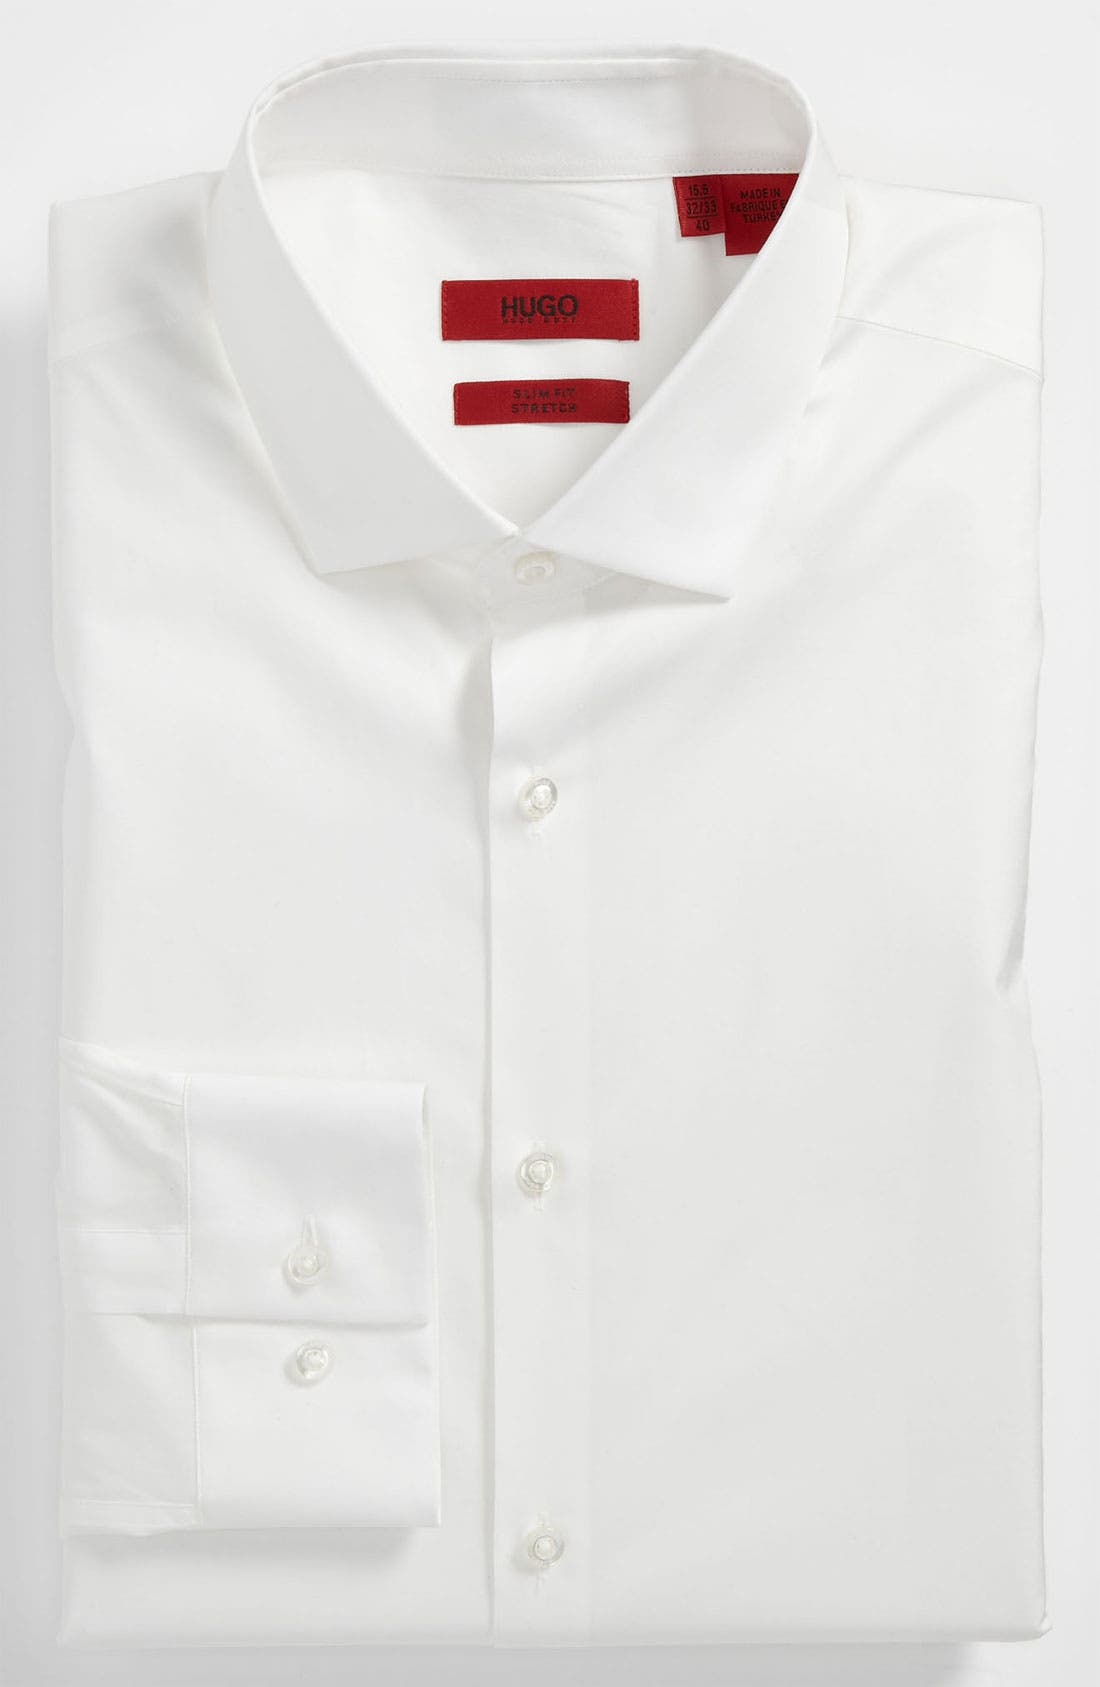 Alternate Image 1 Selected - HUGO Slim Fit Cotton Stretch Dress Shirt